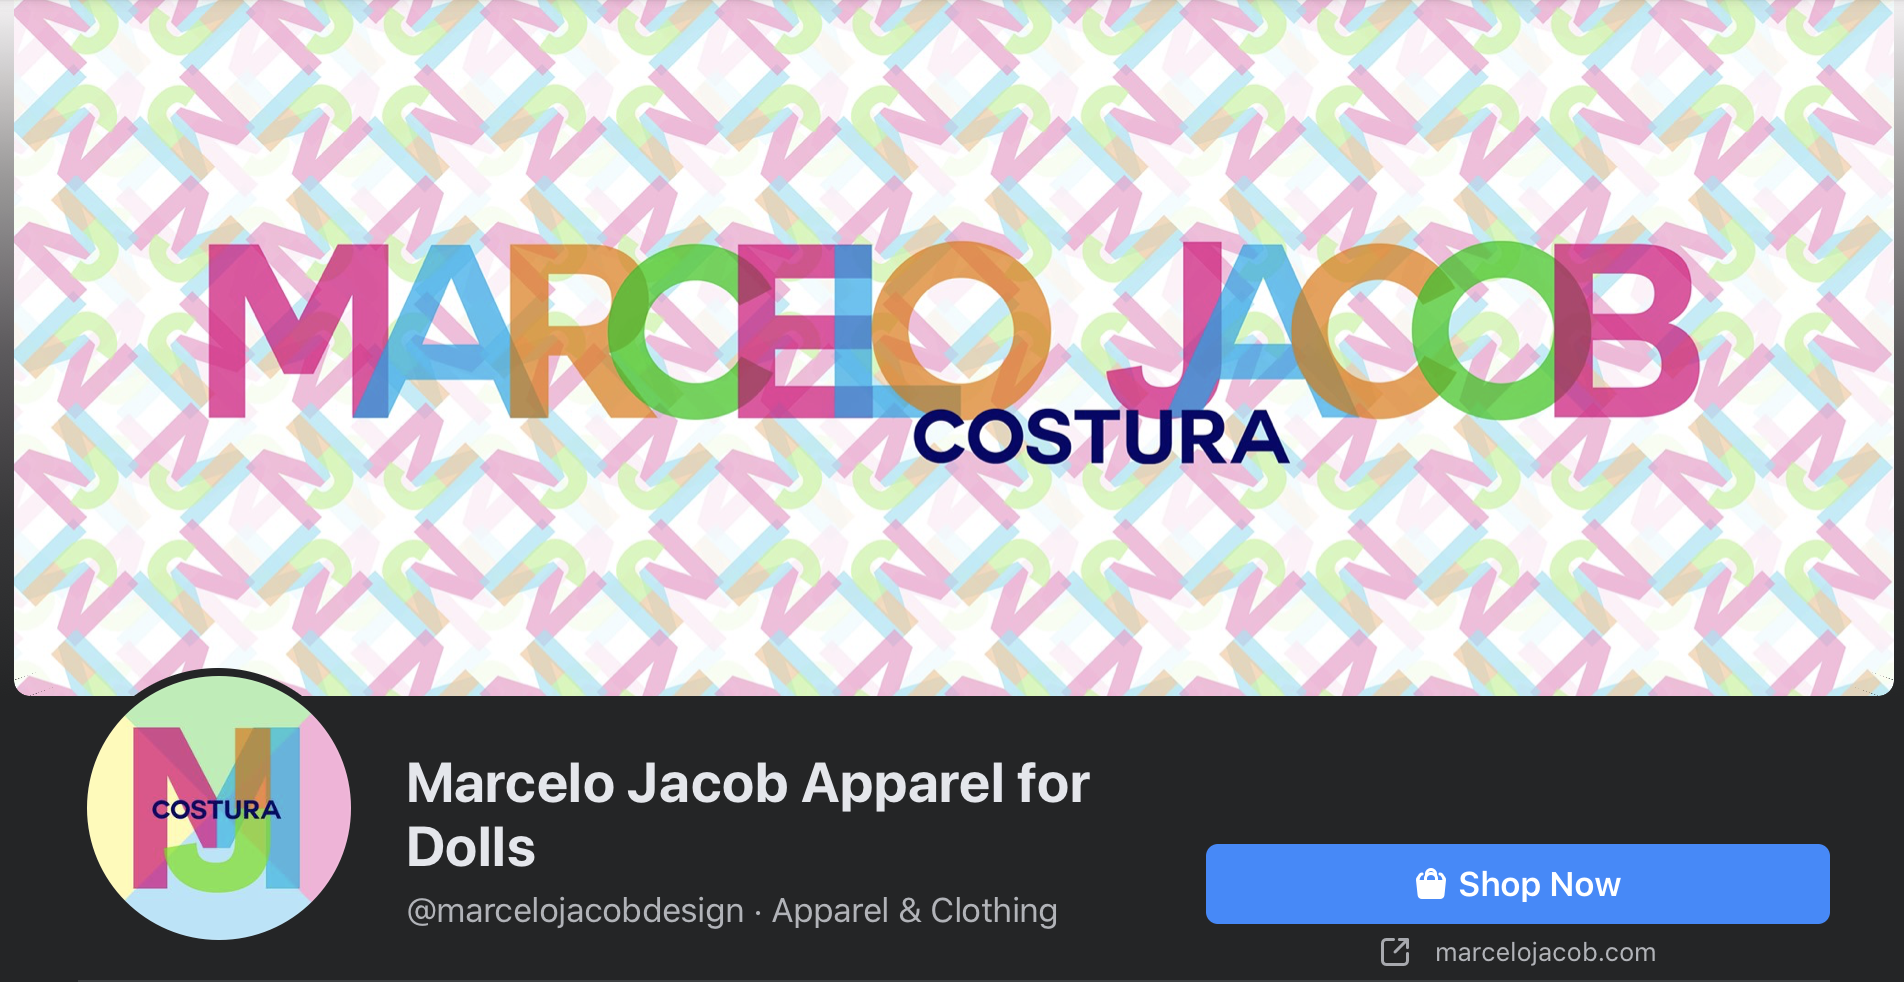 https://www.facebook.com/marcelojacobdesign/